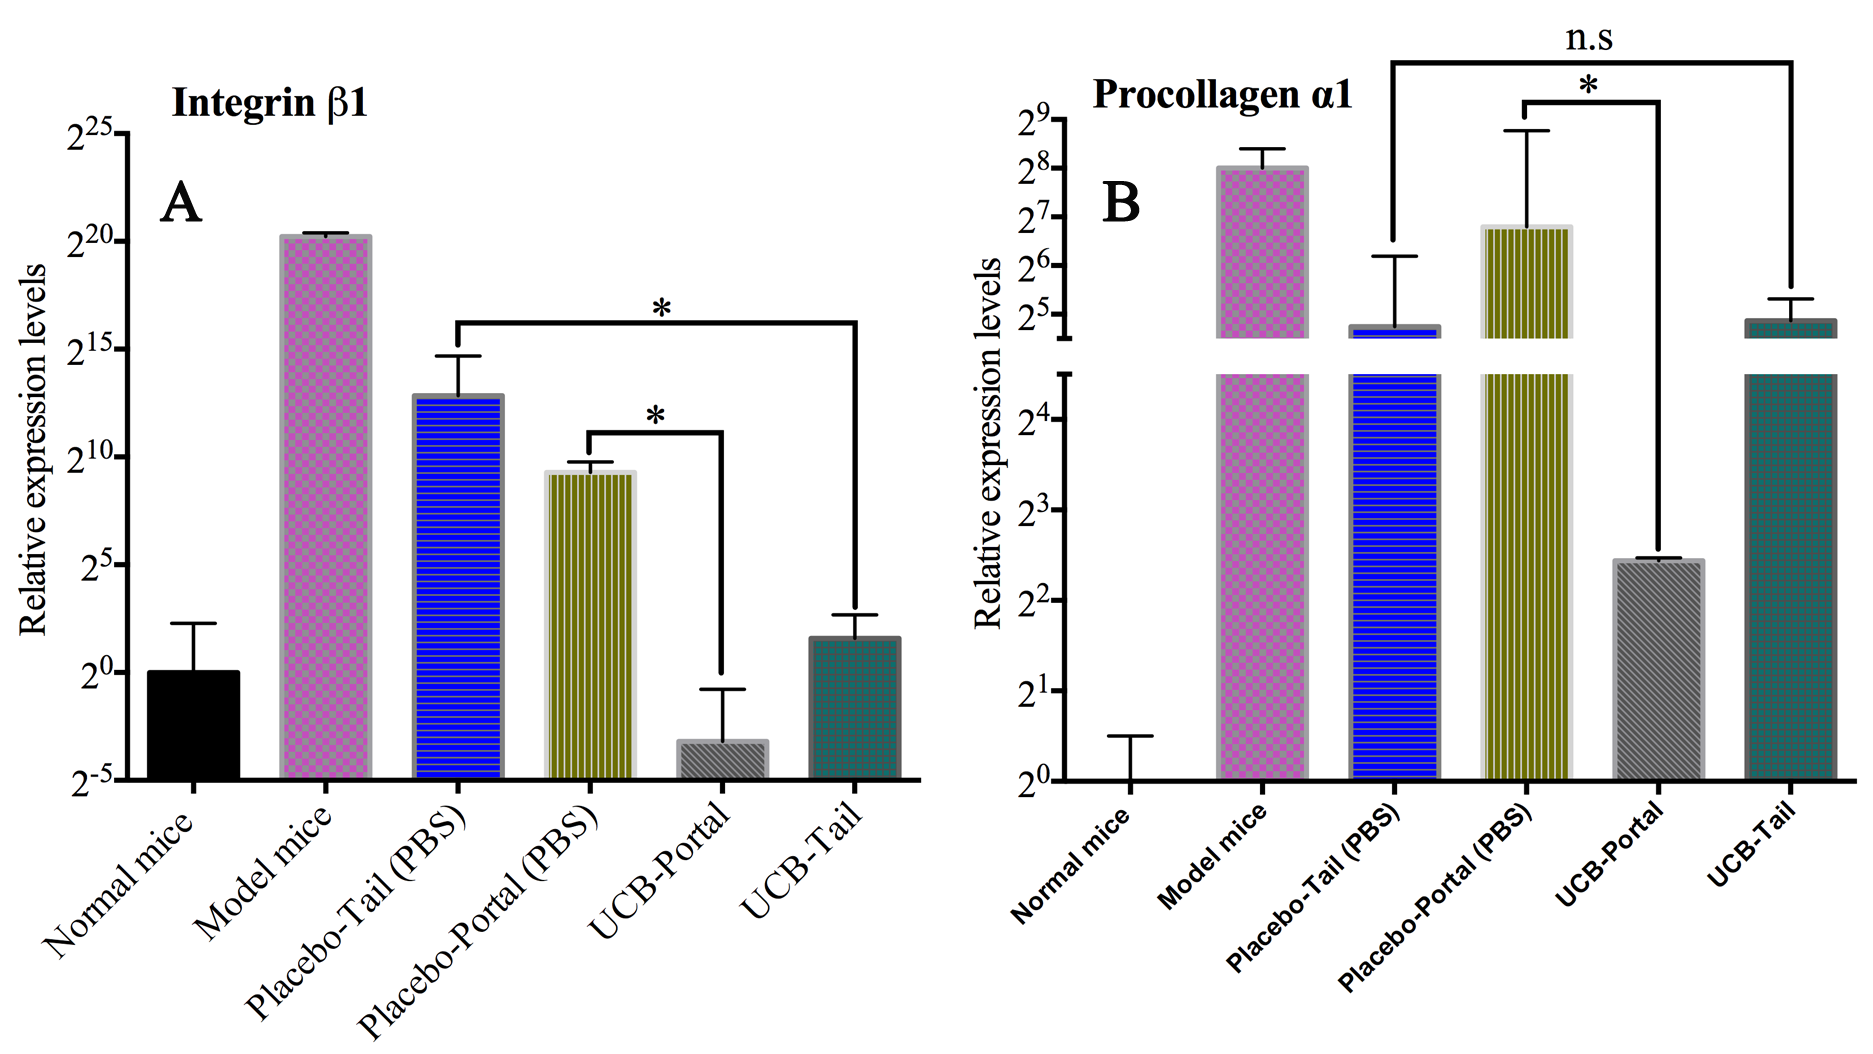 Figure 4 The comparison of integrin beta 1 and procollagen α1 gene expression in the groups